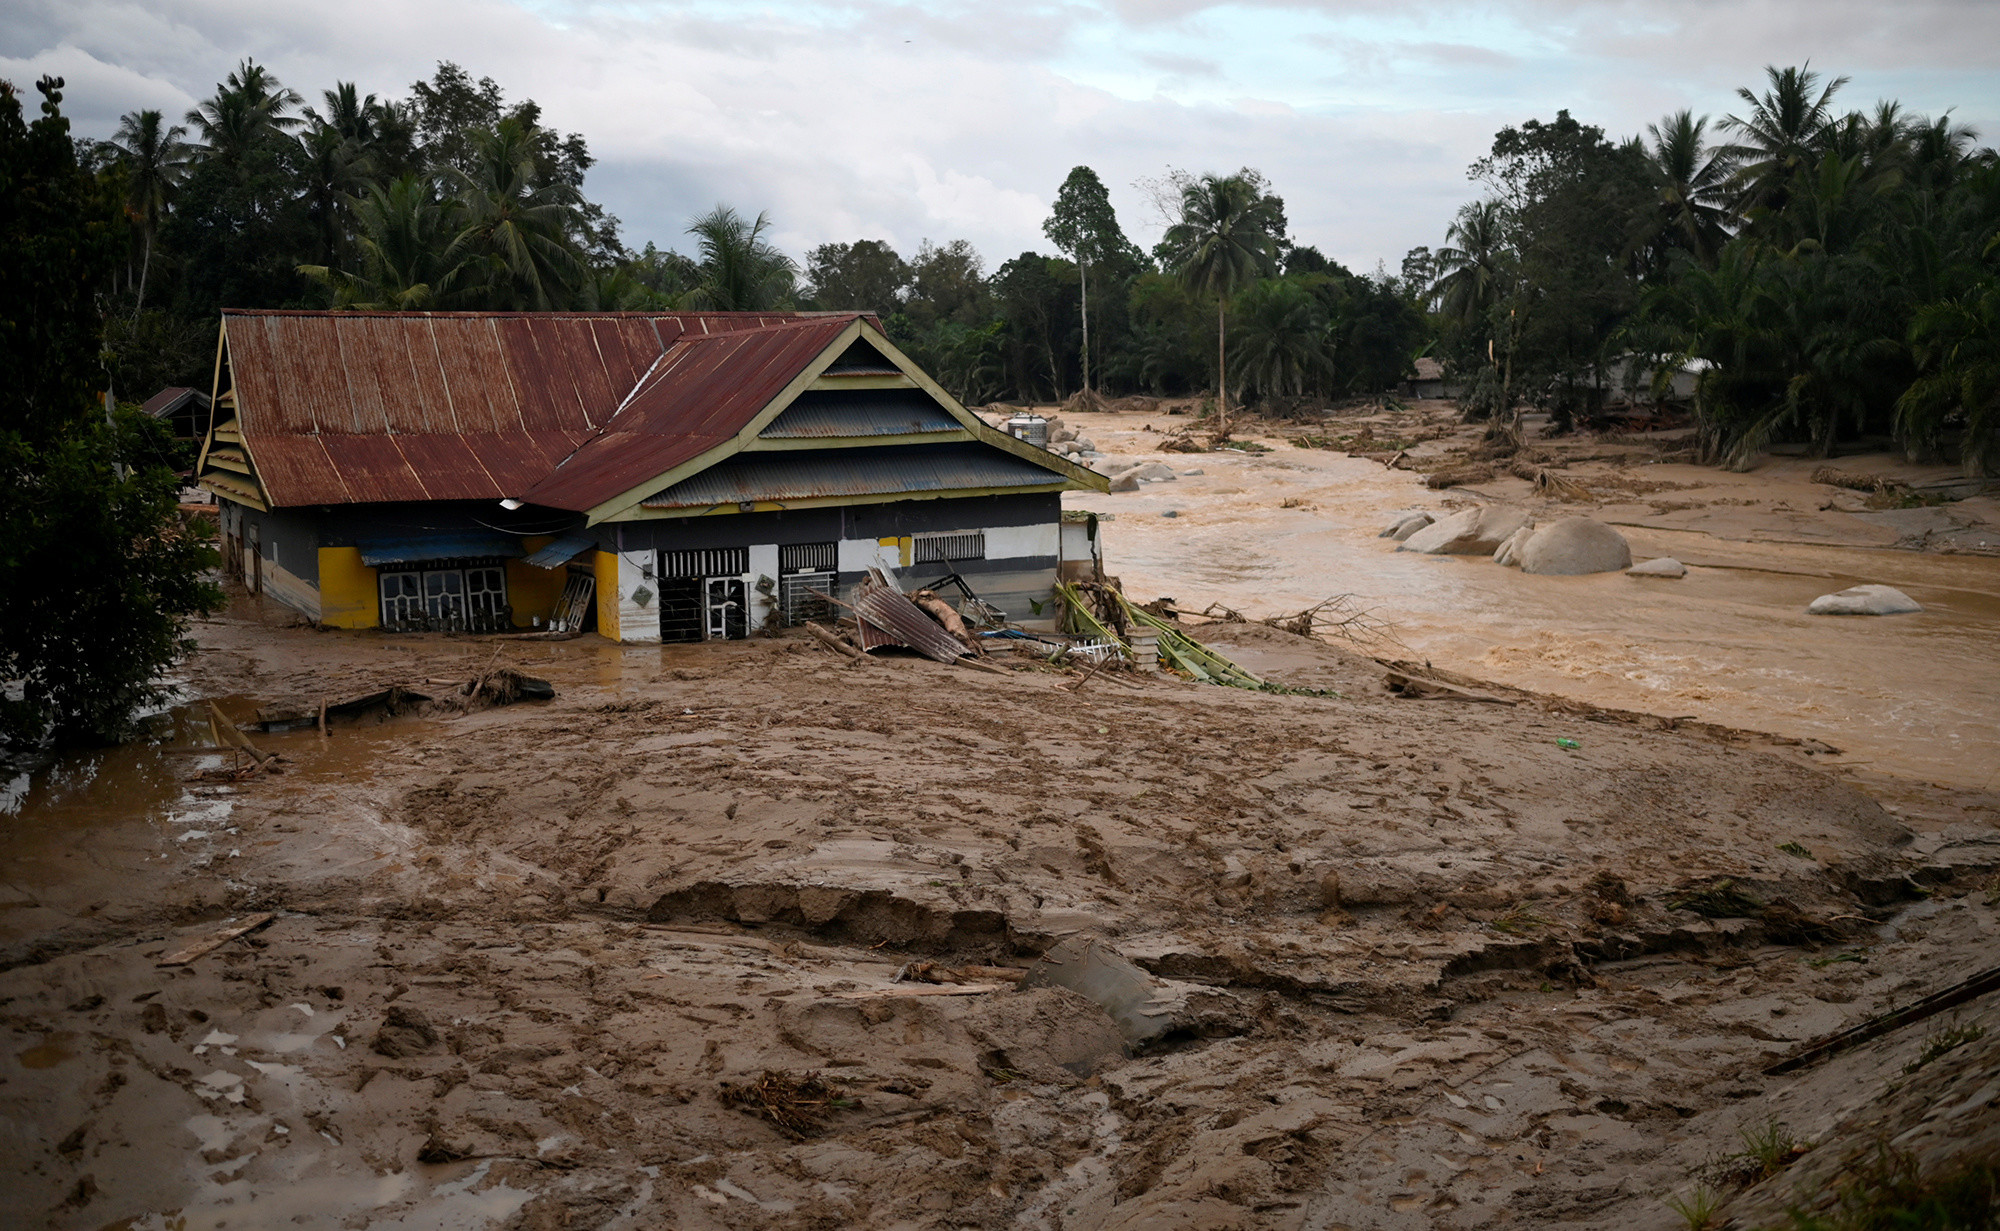 A house is seen submerged in mud after flash floods swept through a Radda Village, as several people were killed and dozens remain missing, in North Luwu in Sulawesi, Indonesia July 14, 2020, Picture taken July, 14 2020. Antara Foto/Hariandi Hafidi/via REUTERS  ATTENTION EDITORS - THIS IMAGE WAS PROVIDED BY THIRD PARTY. MANDATORY CREDIT. INDONESIA OUT. - RC2ETH9AXTA6